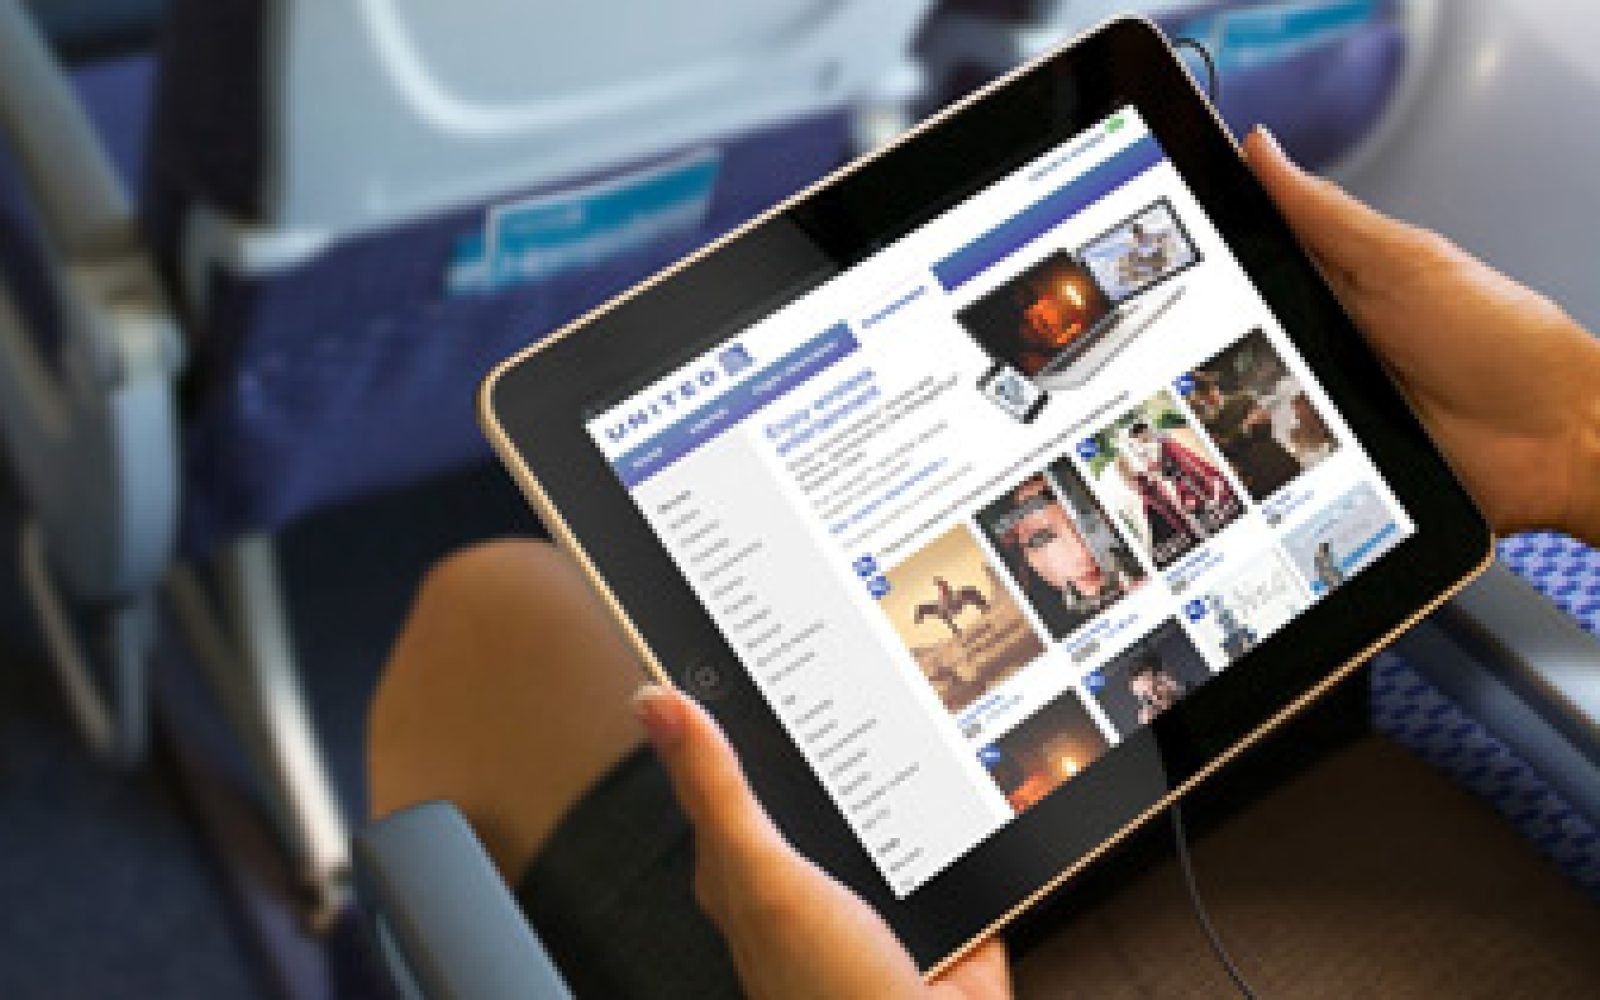 United Airlines updates iOS app with in-flight movie and TV service